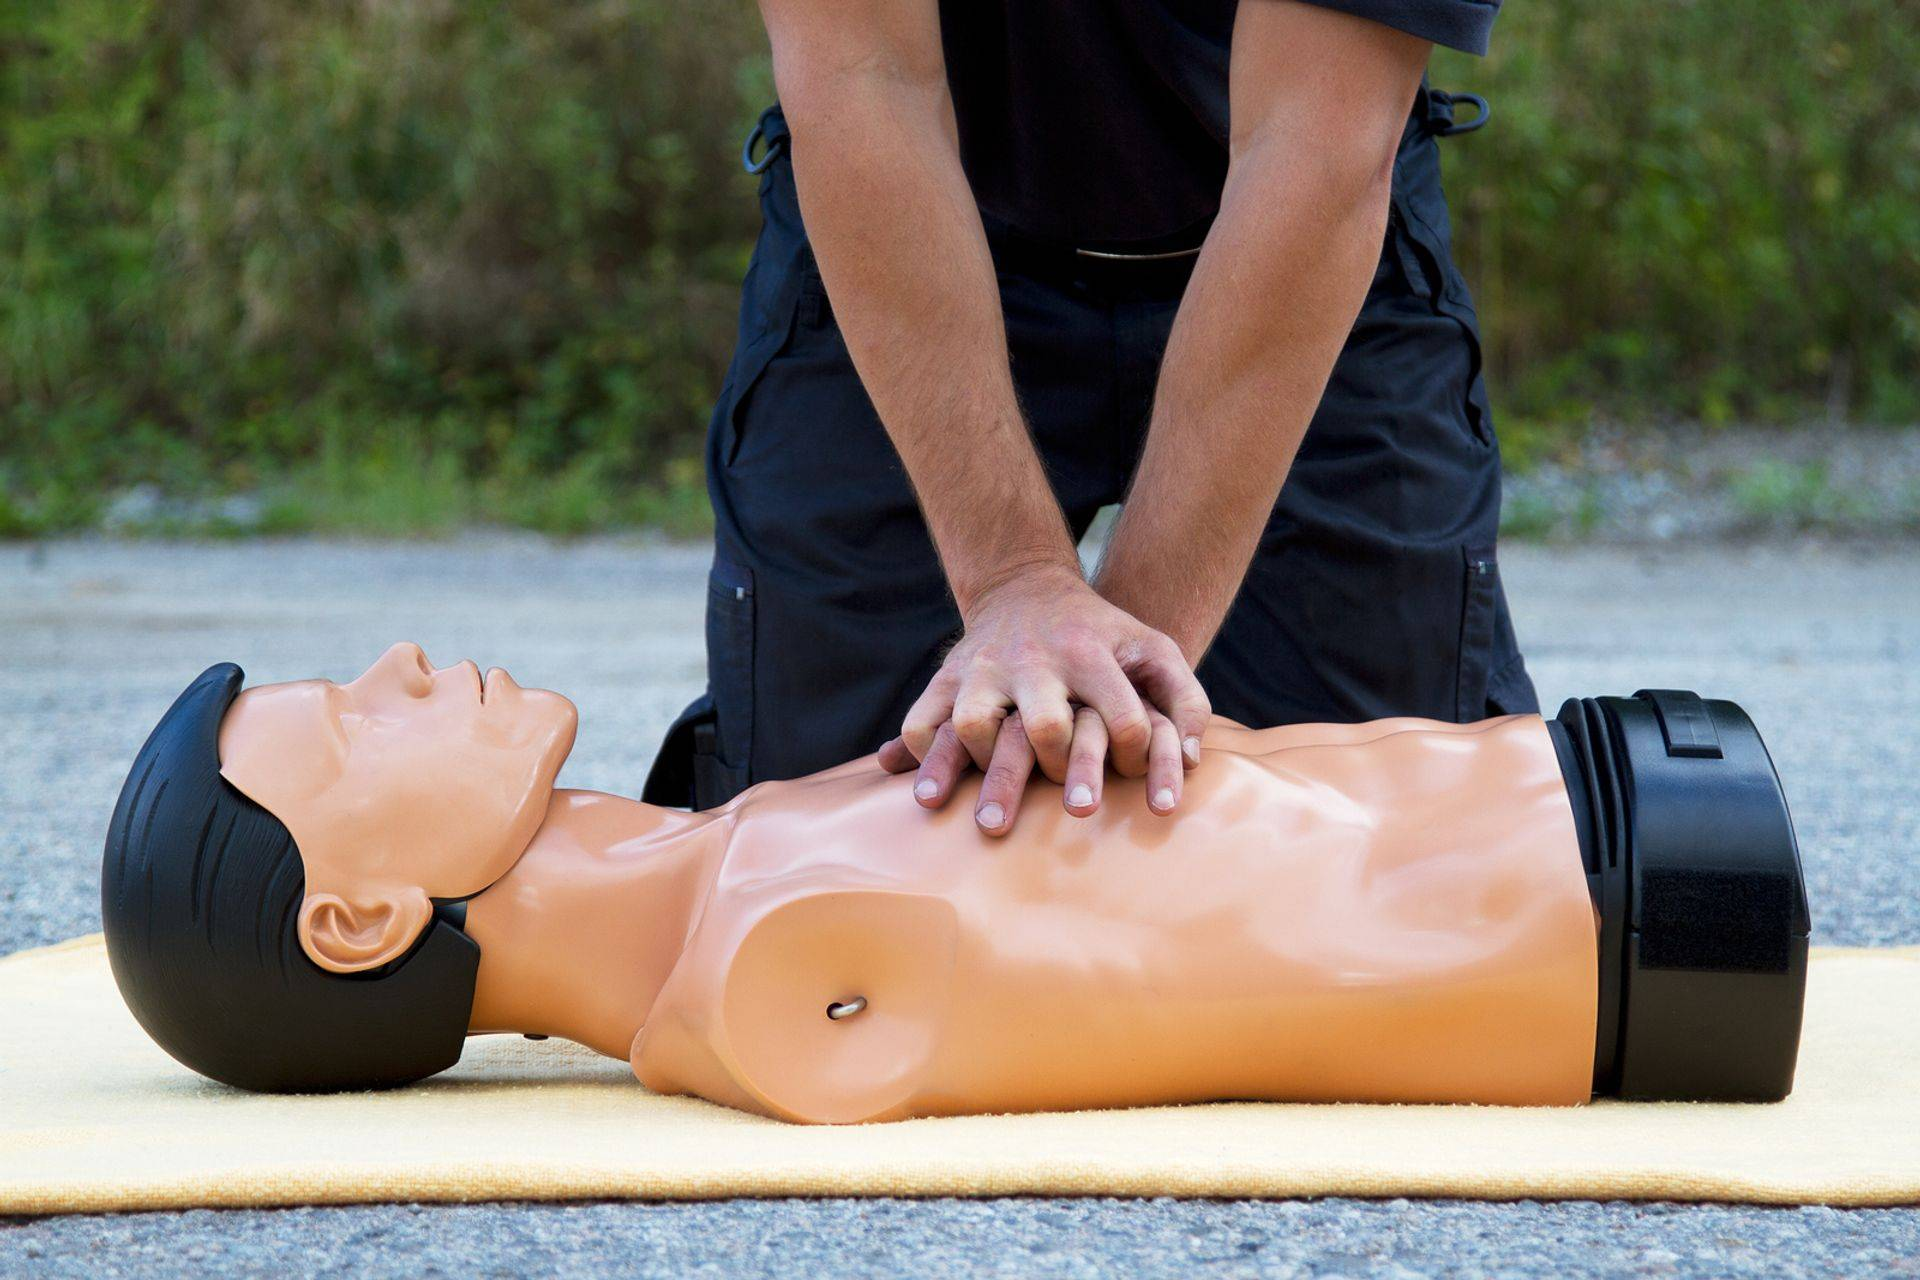 Learn new CPR and First Aid skills or take a refresher course. We offer many classes to fit your needs.